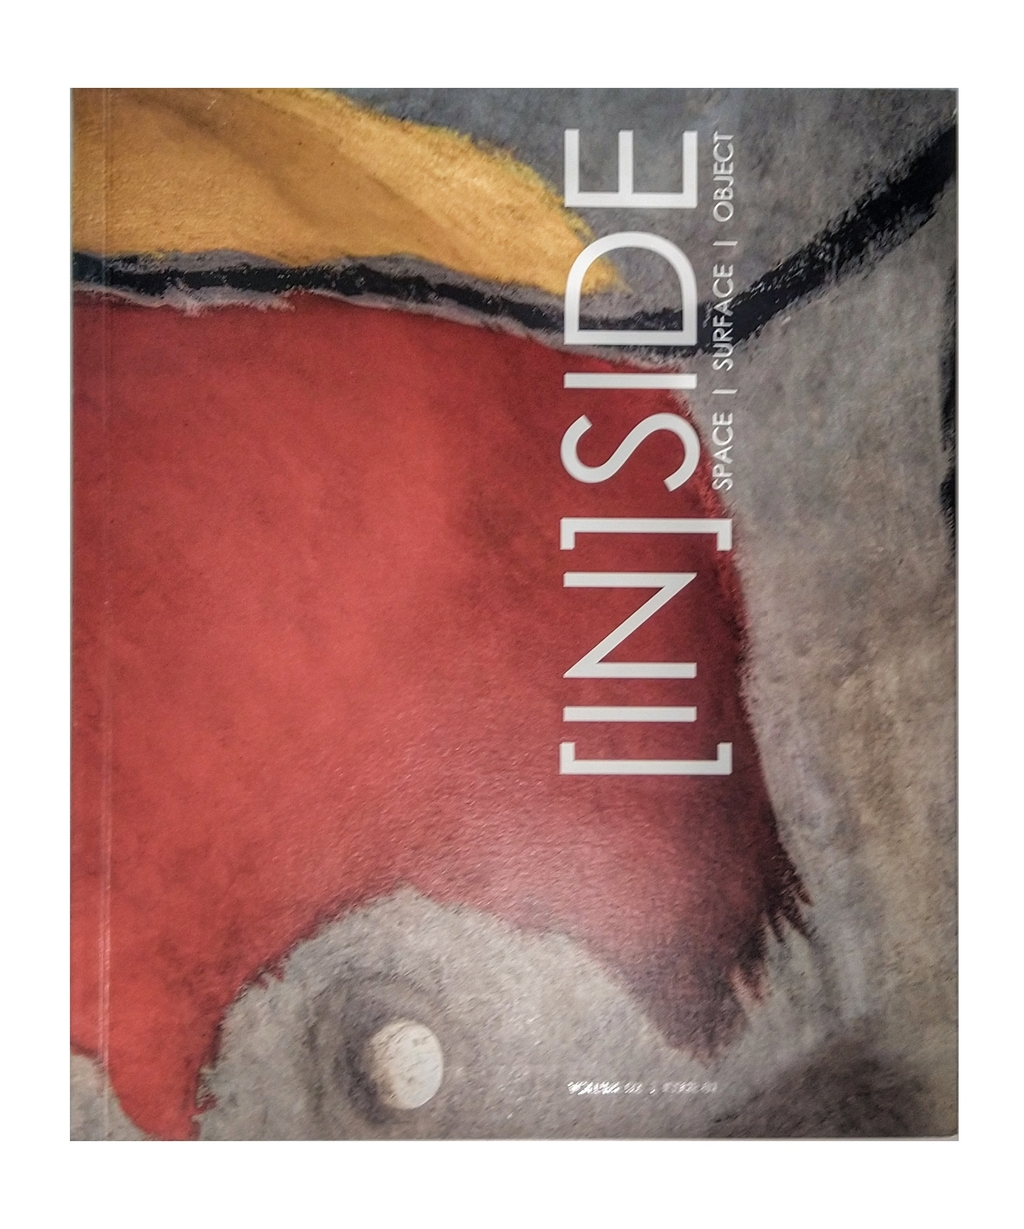 INSIDE VOL02 ISSUE 01